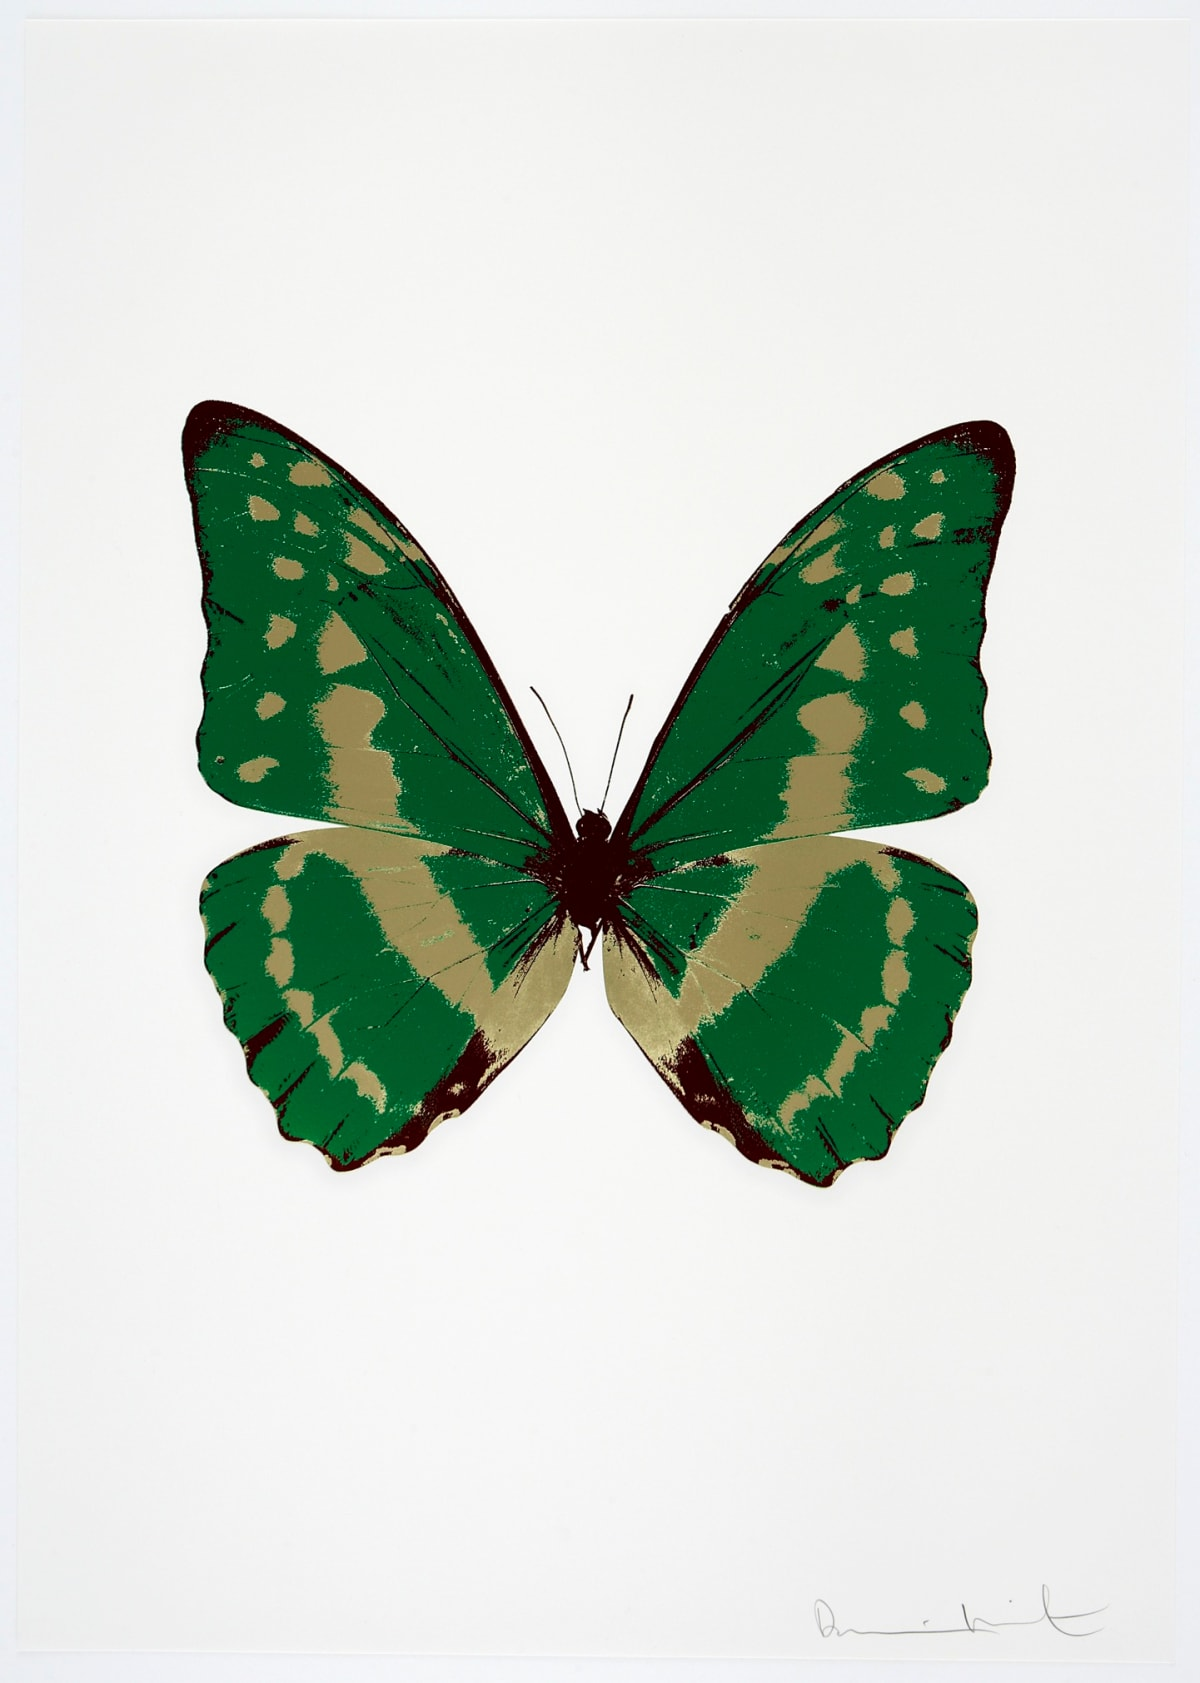 Damien Hirst The Souls III - Emerald Green/Cool Gold/Burgundy, 2010 3 colour foil block on 300gsm Arches 88 archival paper. Signed and numbered. Published by Paul Stolper and Other Criteria 72 x 51cm OC7969 / 660-72 Edition of 15